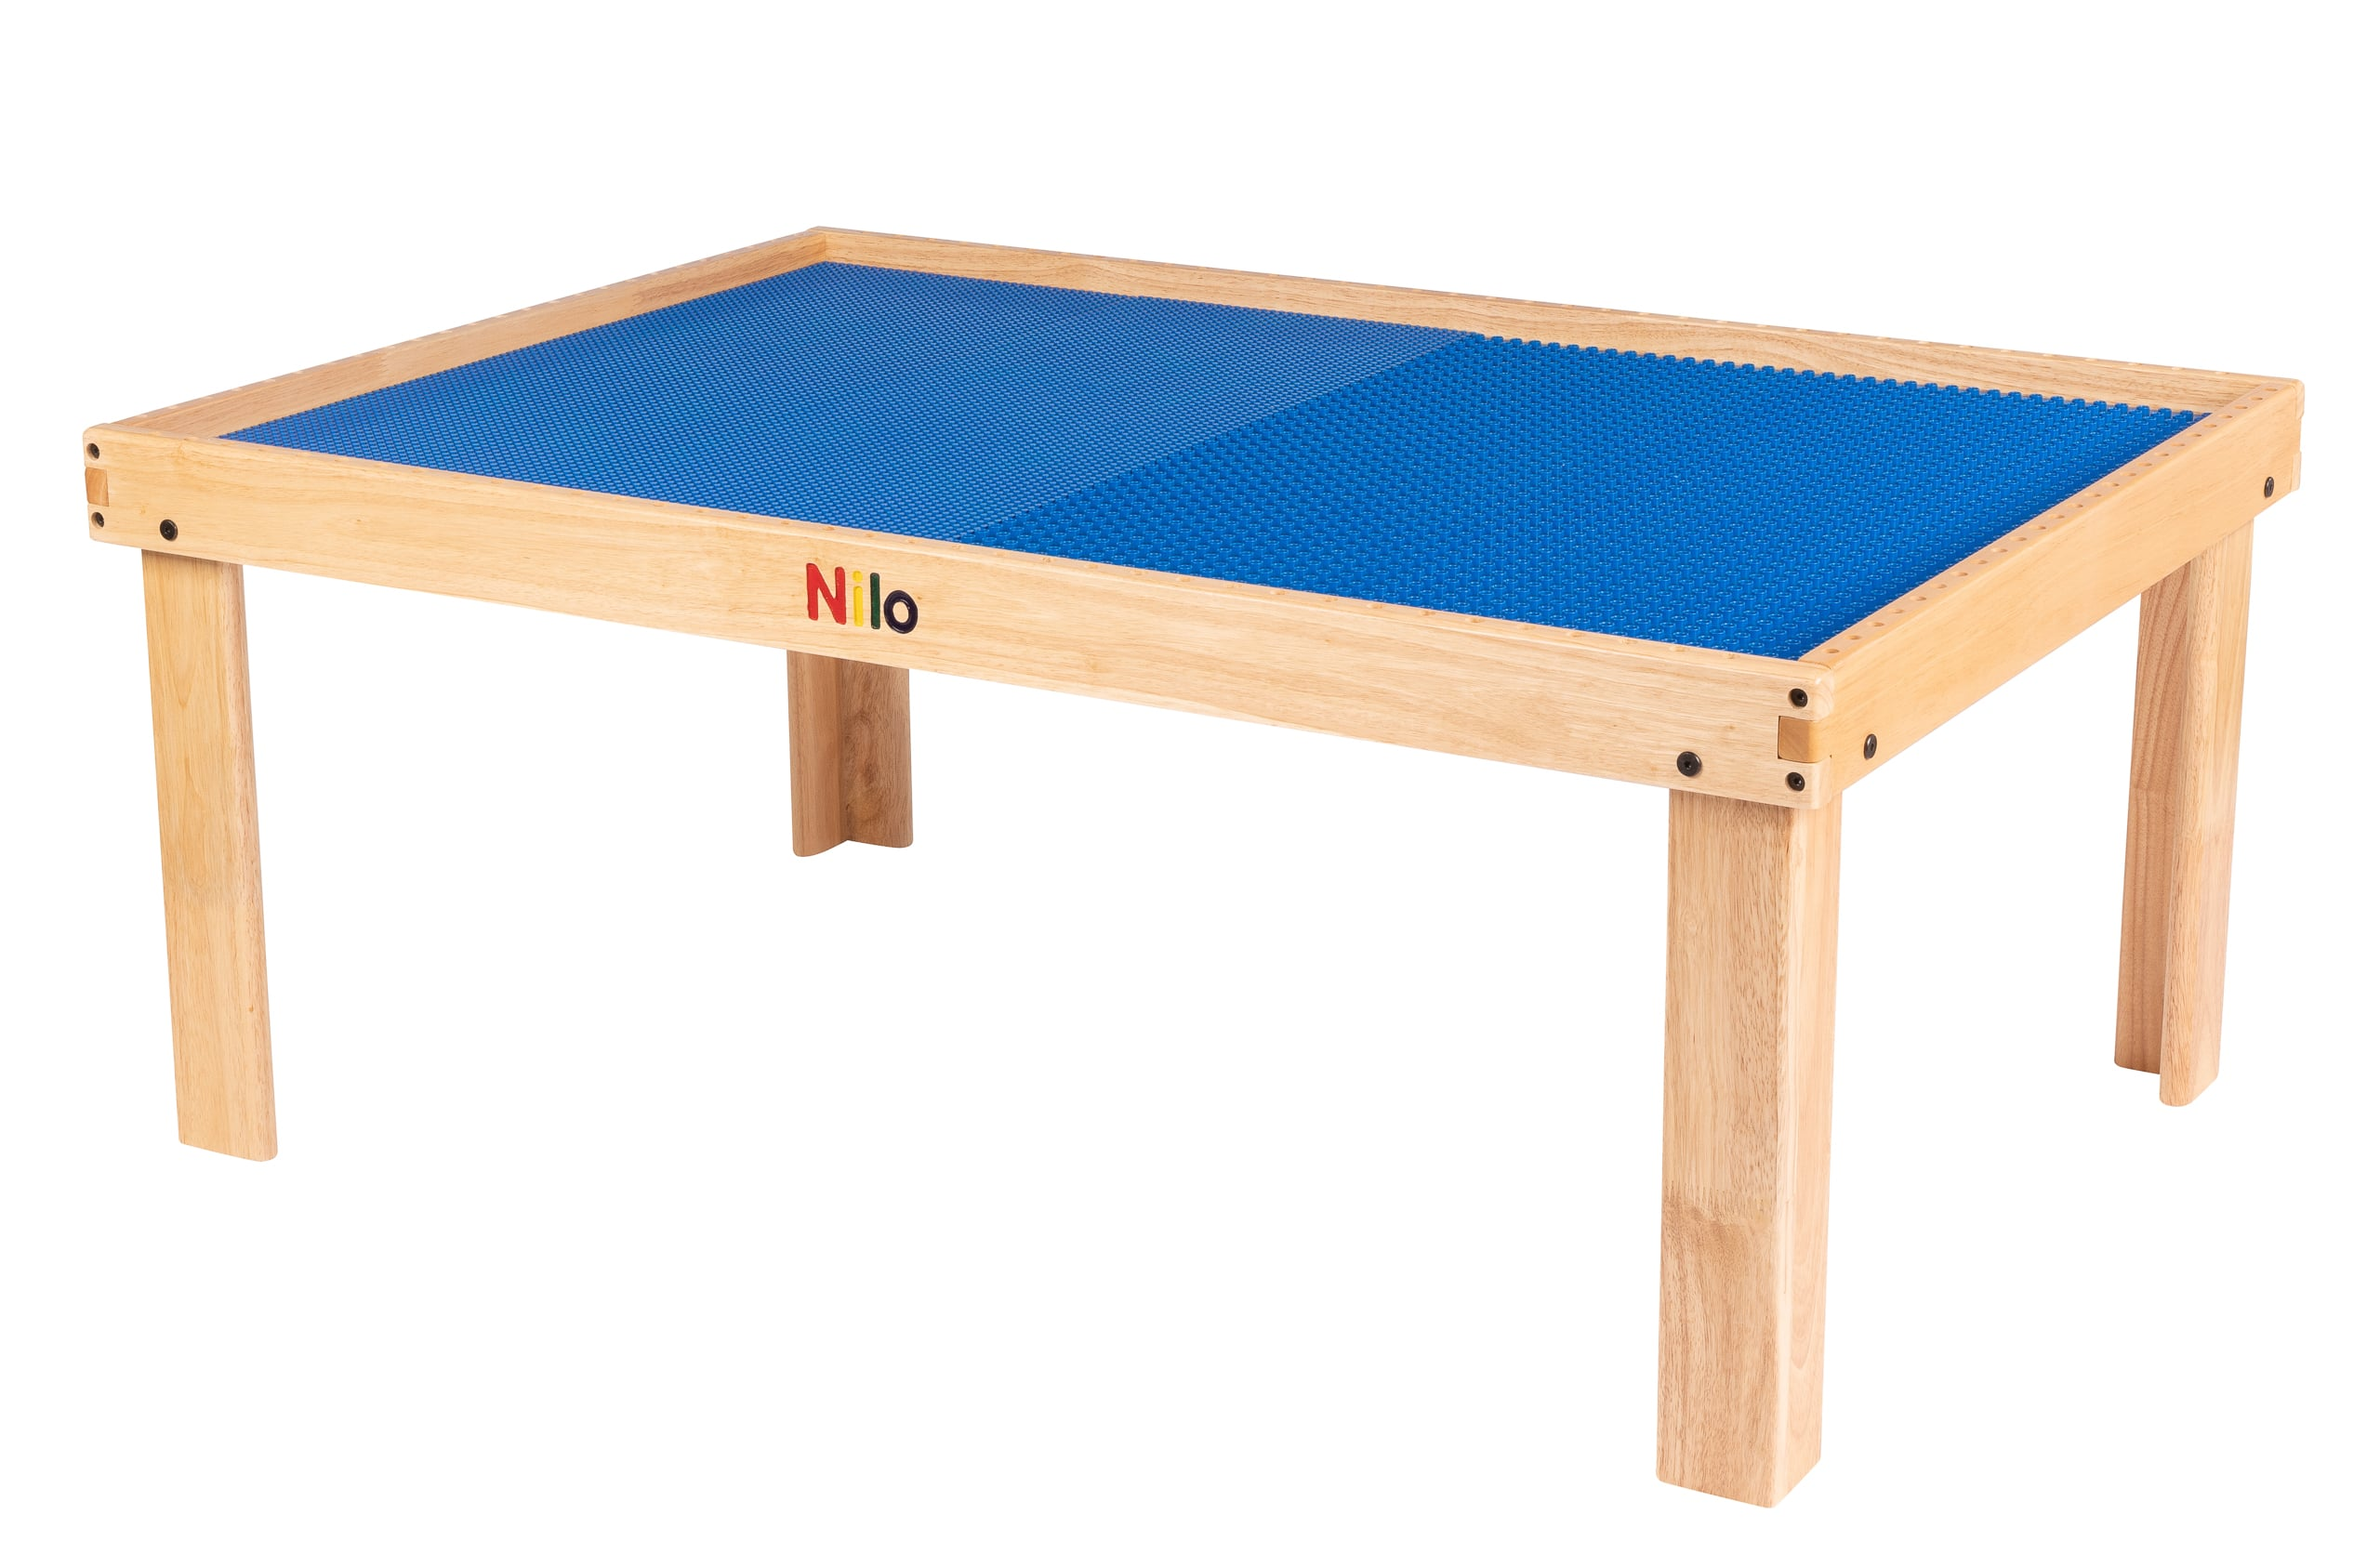 large childrens play table shown with blue nilo lego duplo compatible baseplate mats